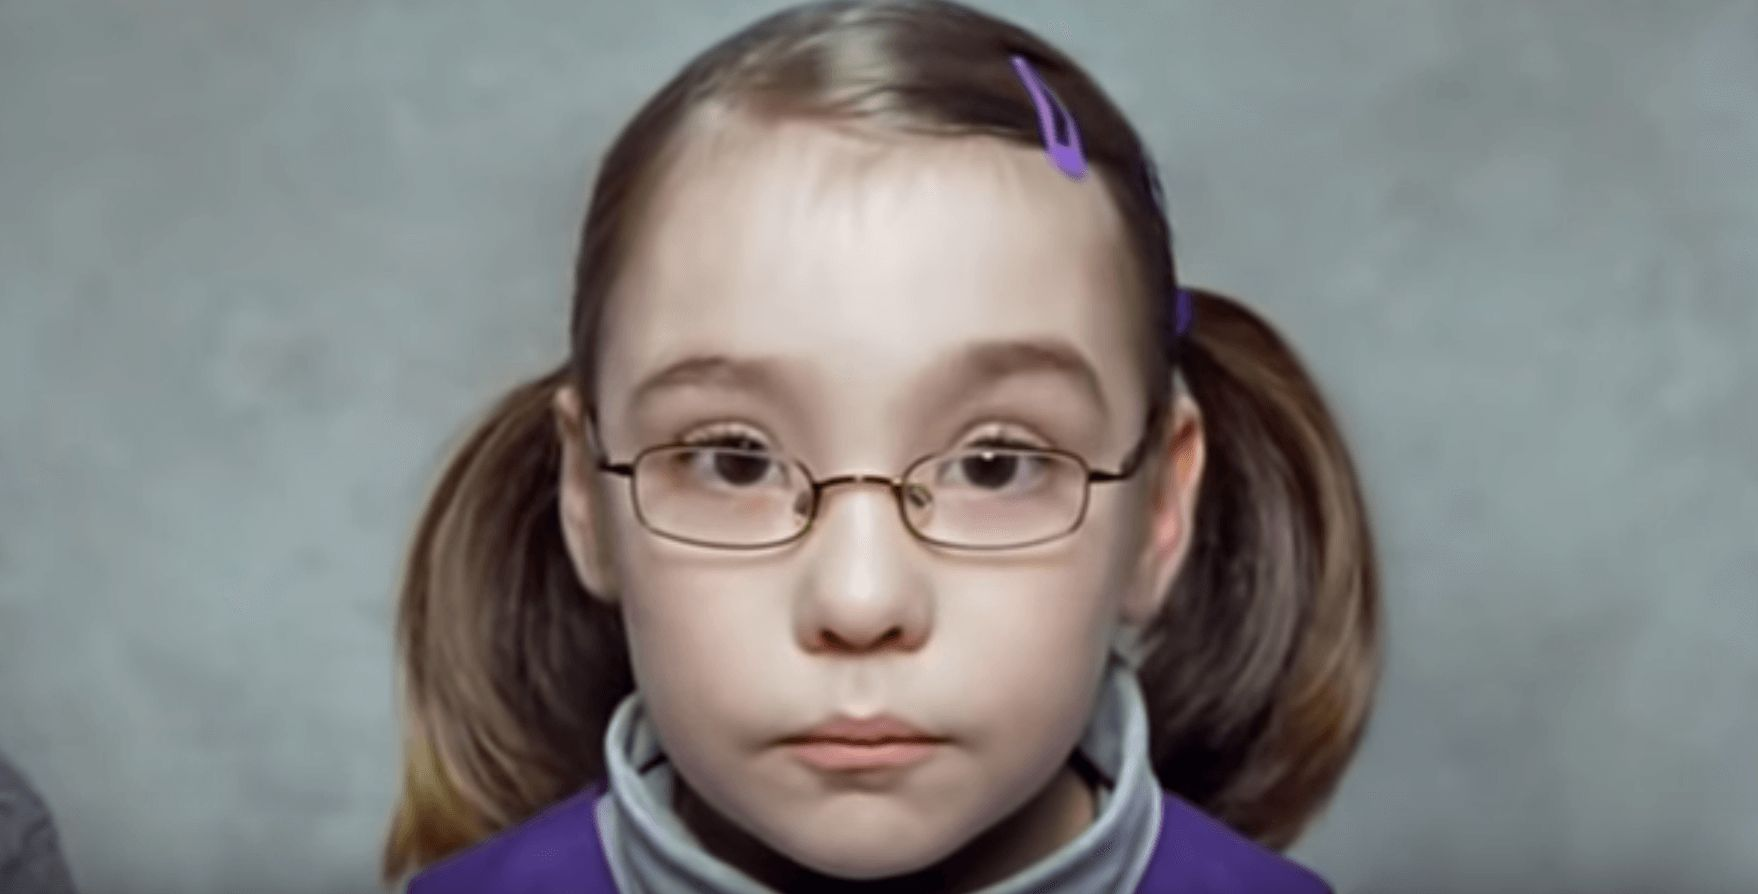 The Kids From The Cadbury Eyebrow Advert This Is Where They Are Now